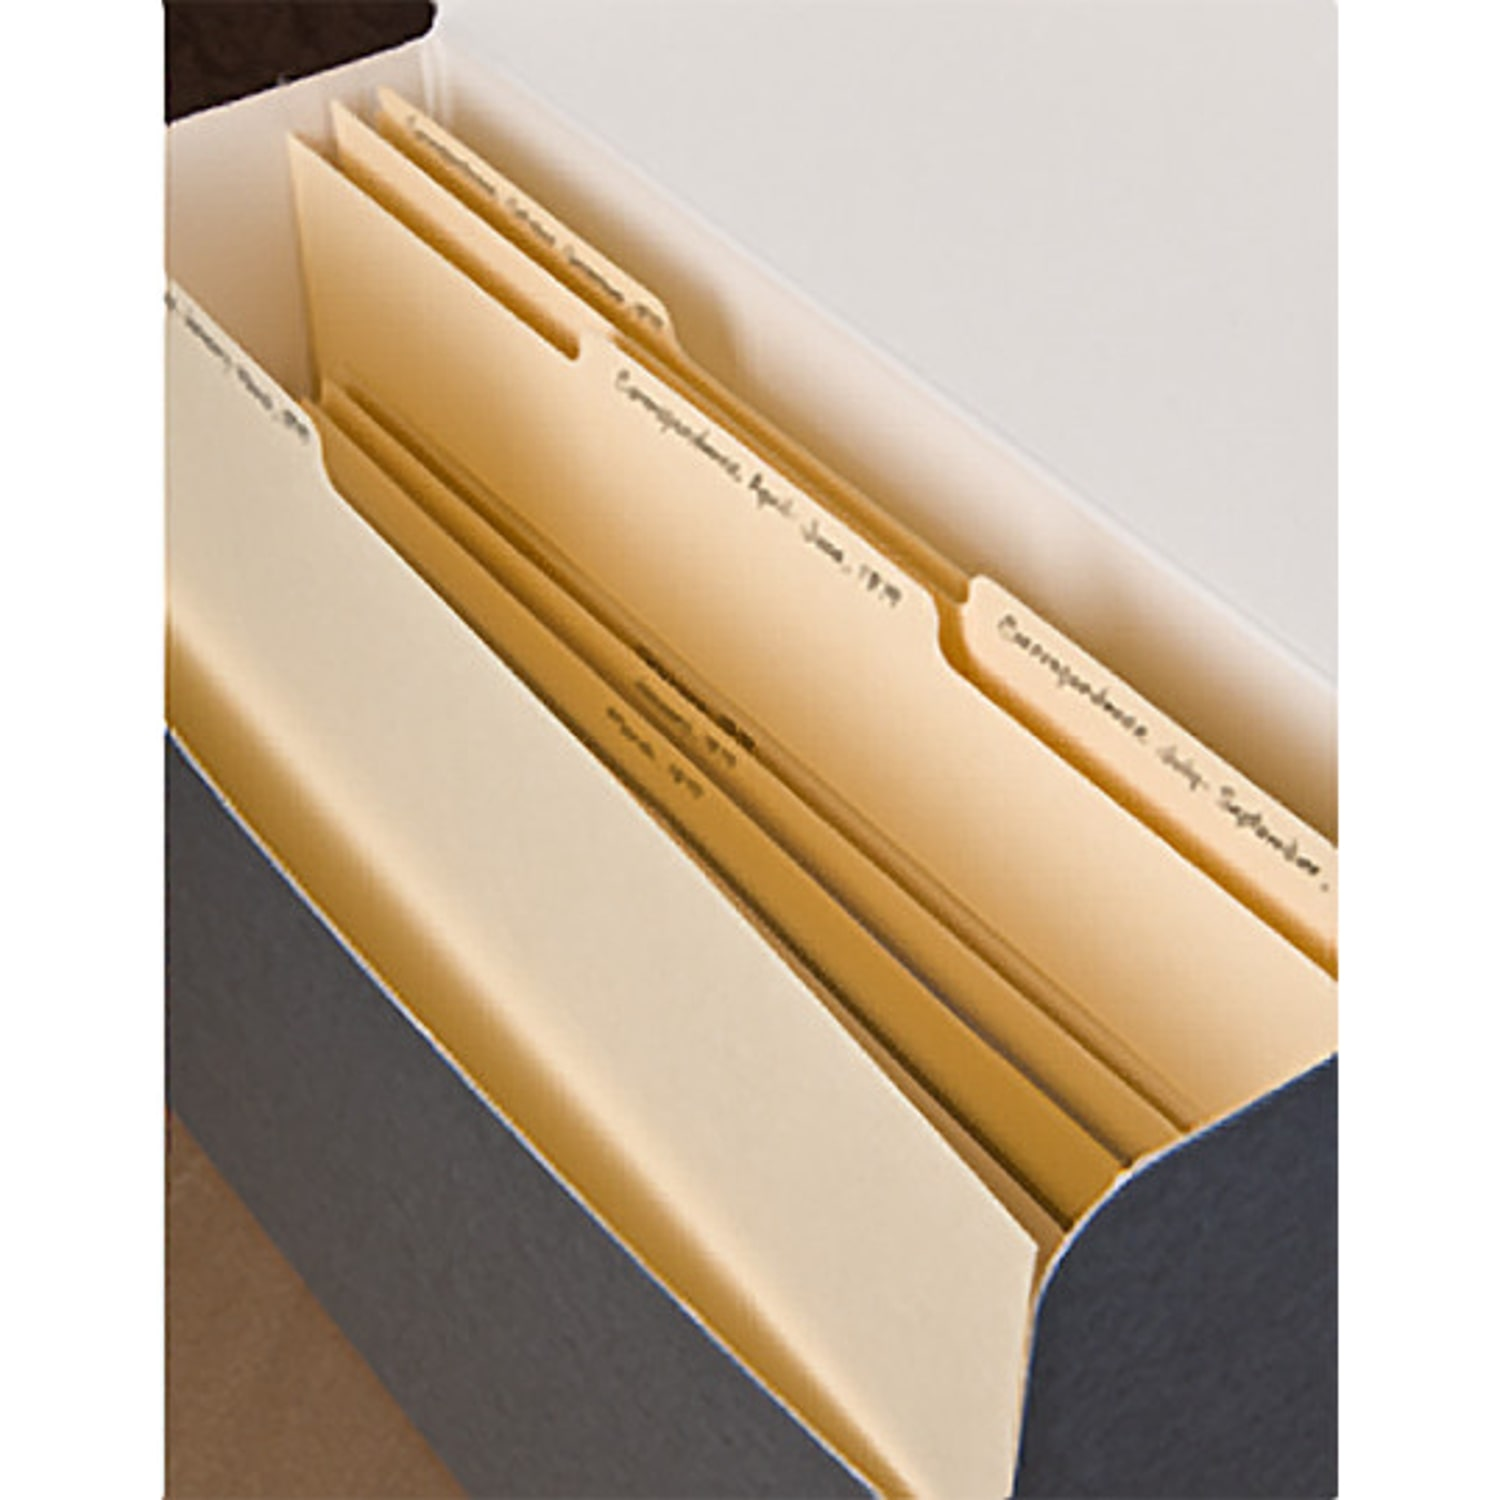 Tabbed Index Dividers Archival & Library Solutions